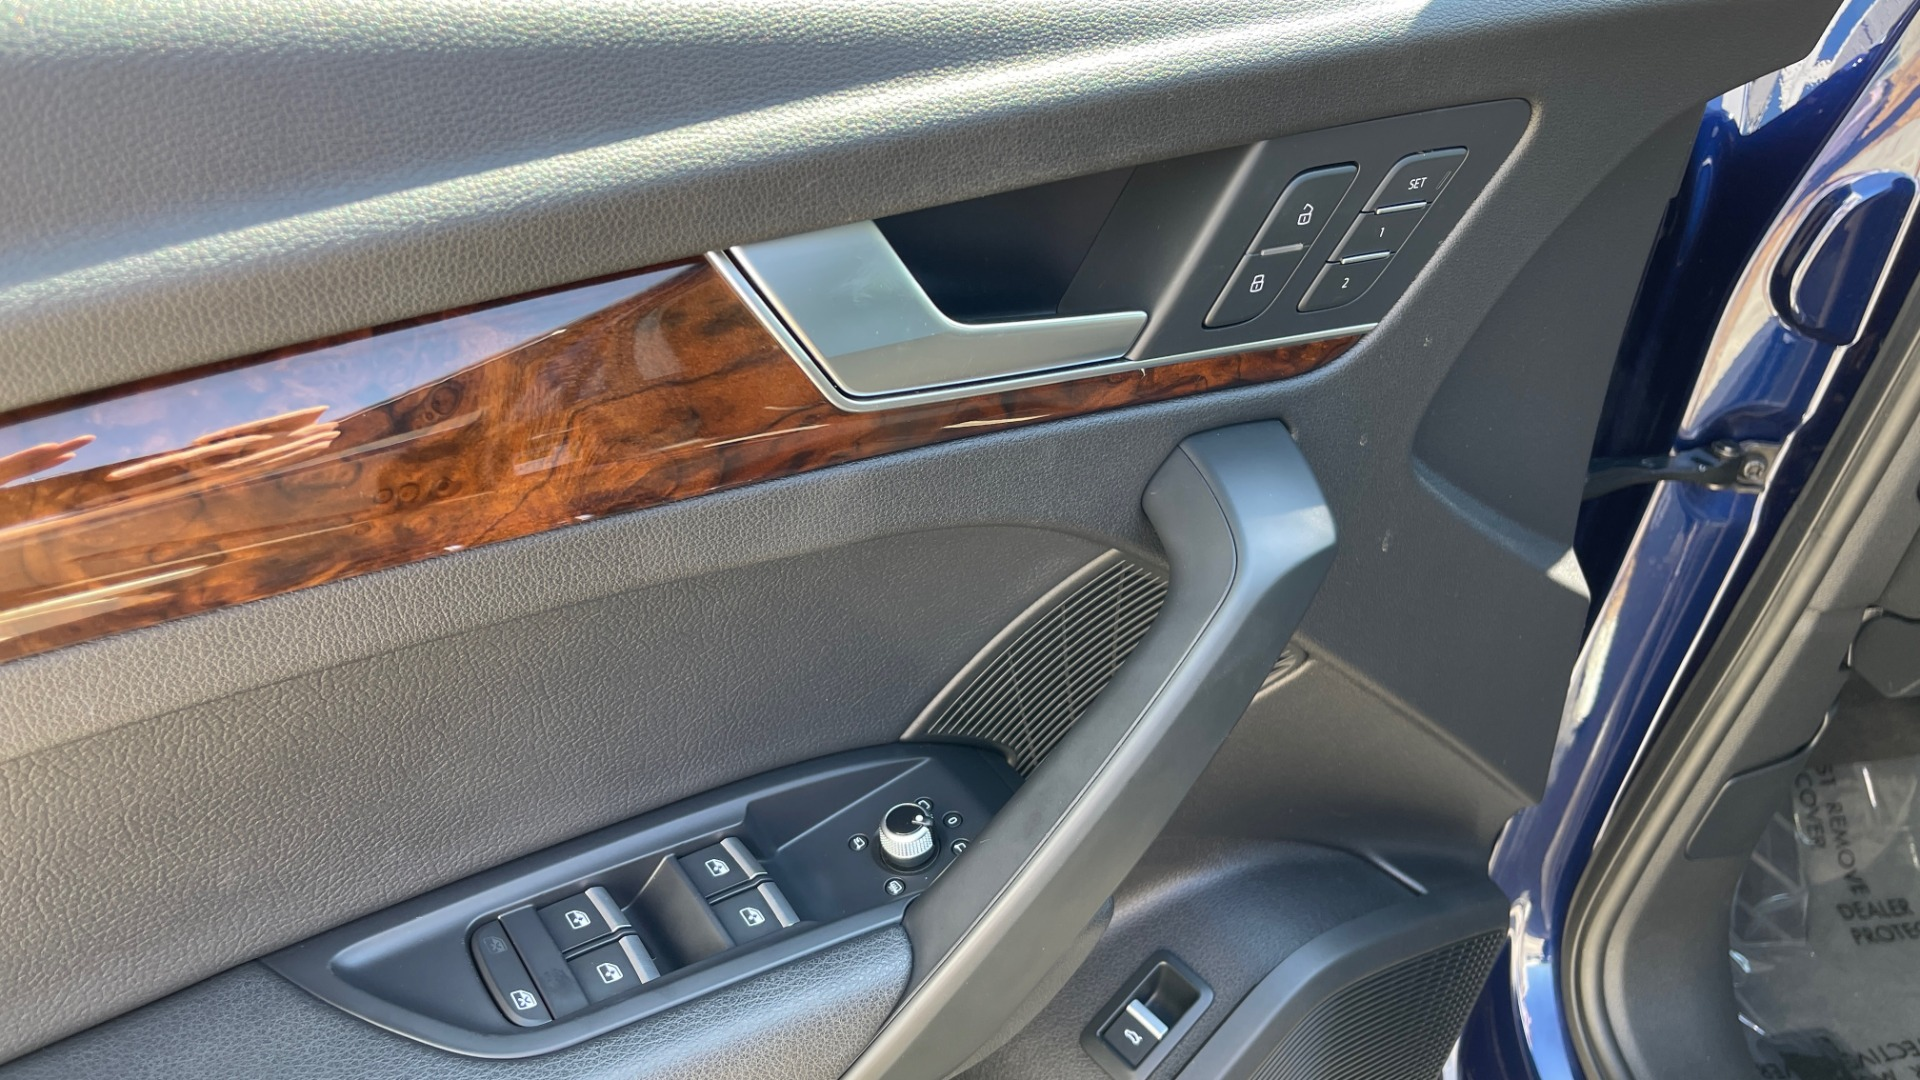 Used 2018 Audi Q5 PREMIUM PLUS / NAV / PANO-ROOF / PARK SYSTEM / REARVIEW for sale $33,695 at Formula Imports in Charlotte NC 28227 23